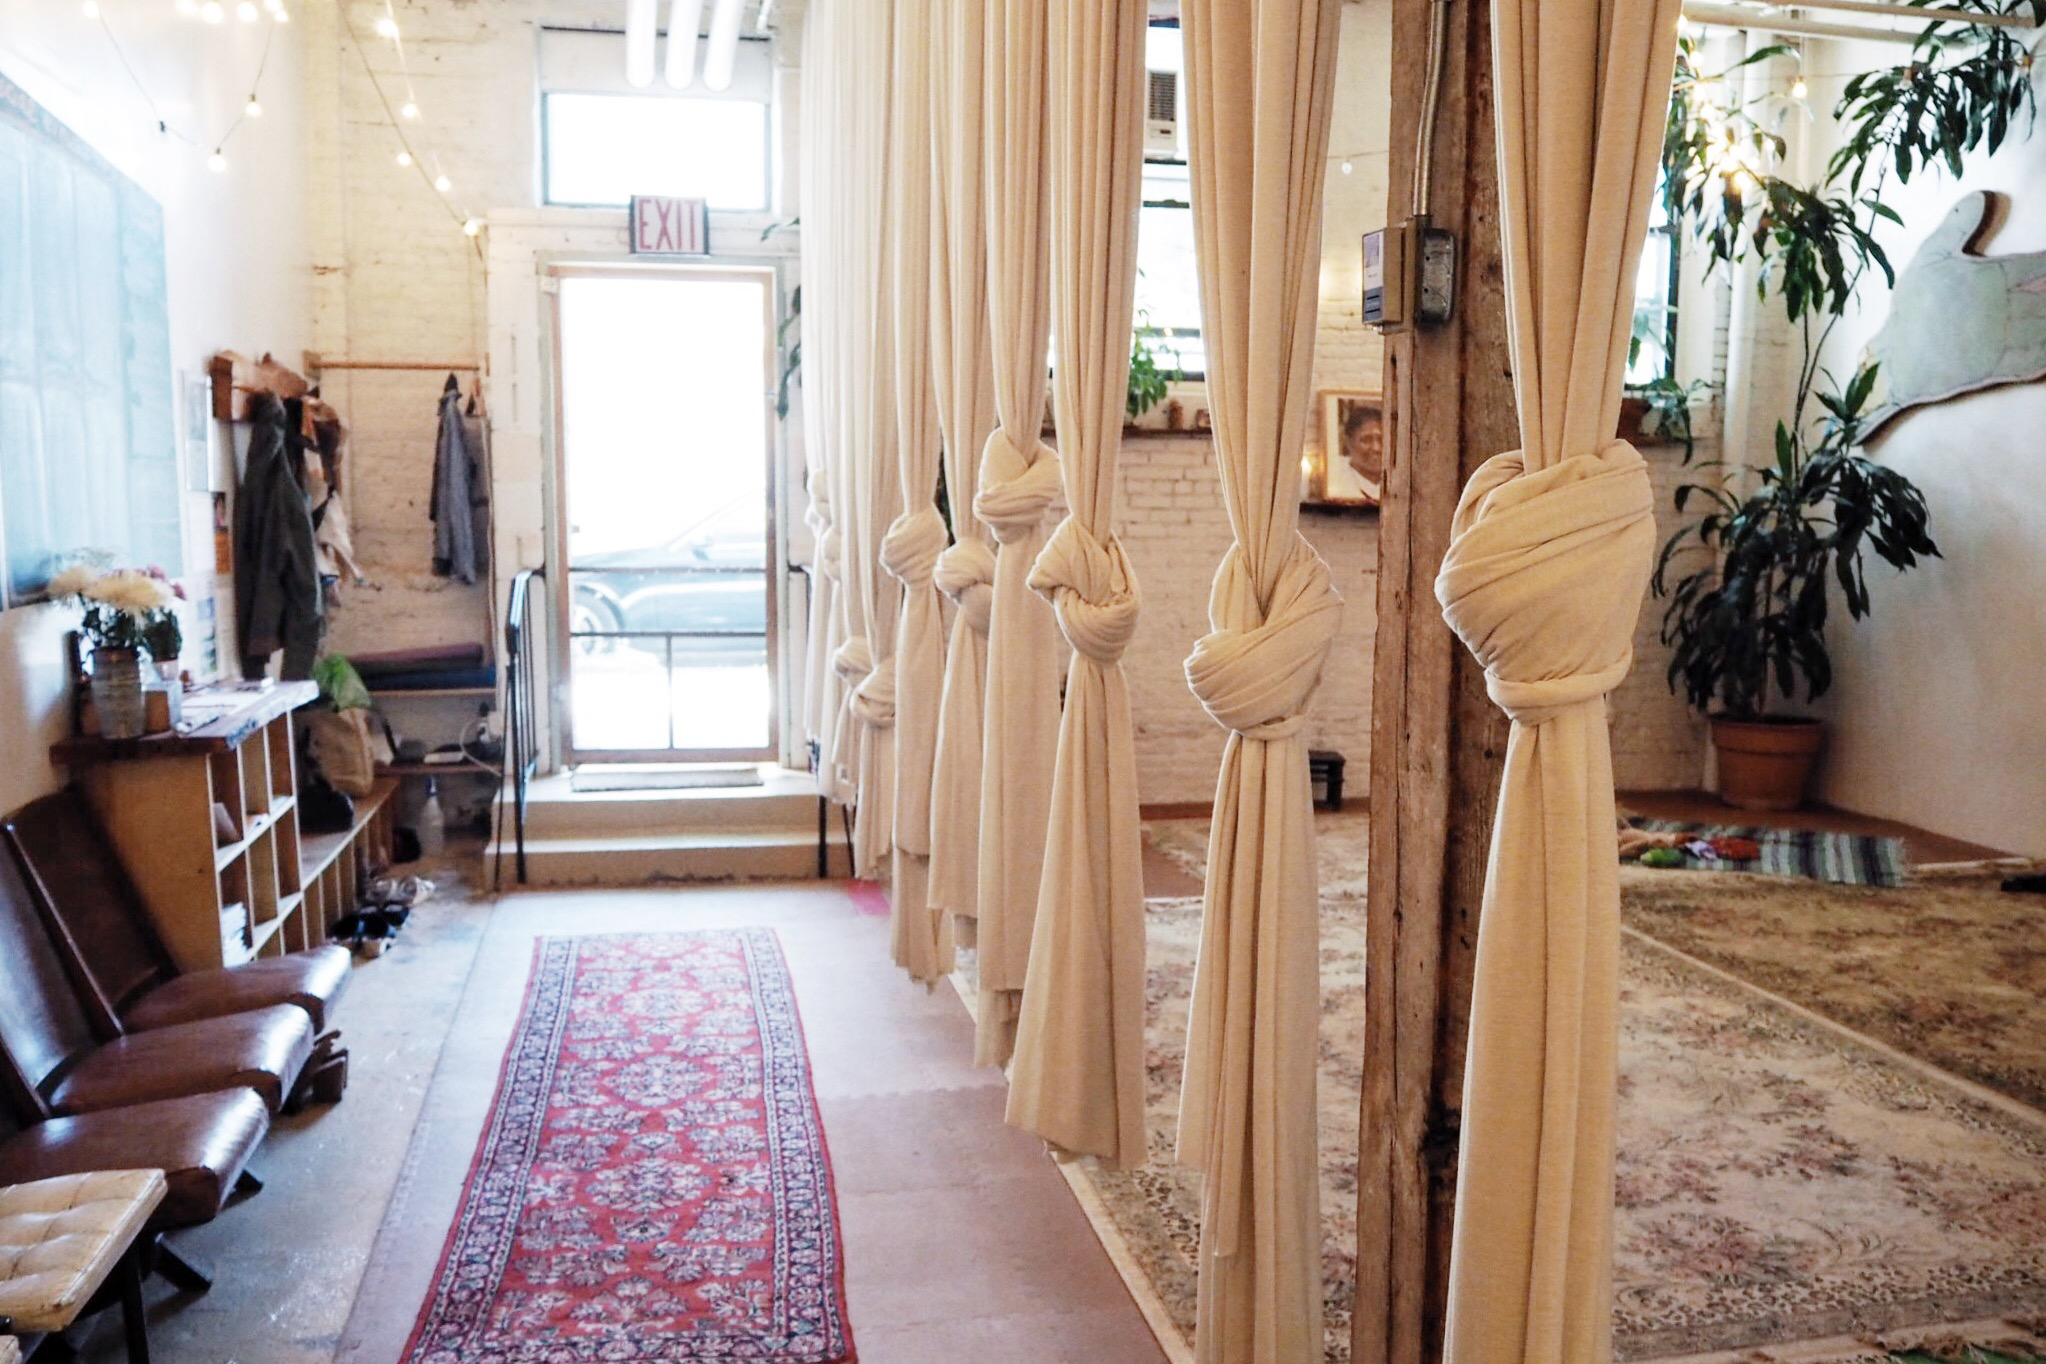 Maha Rose Healing Center, recommended by Erika Spring, Sara Radin & Carrie Schaff (image courtesy    The Naturalista   )